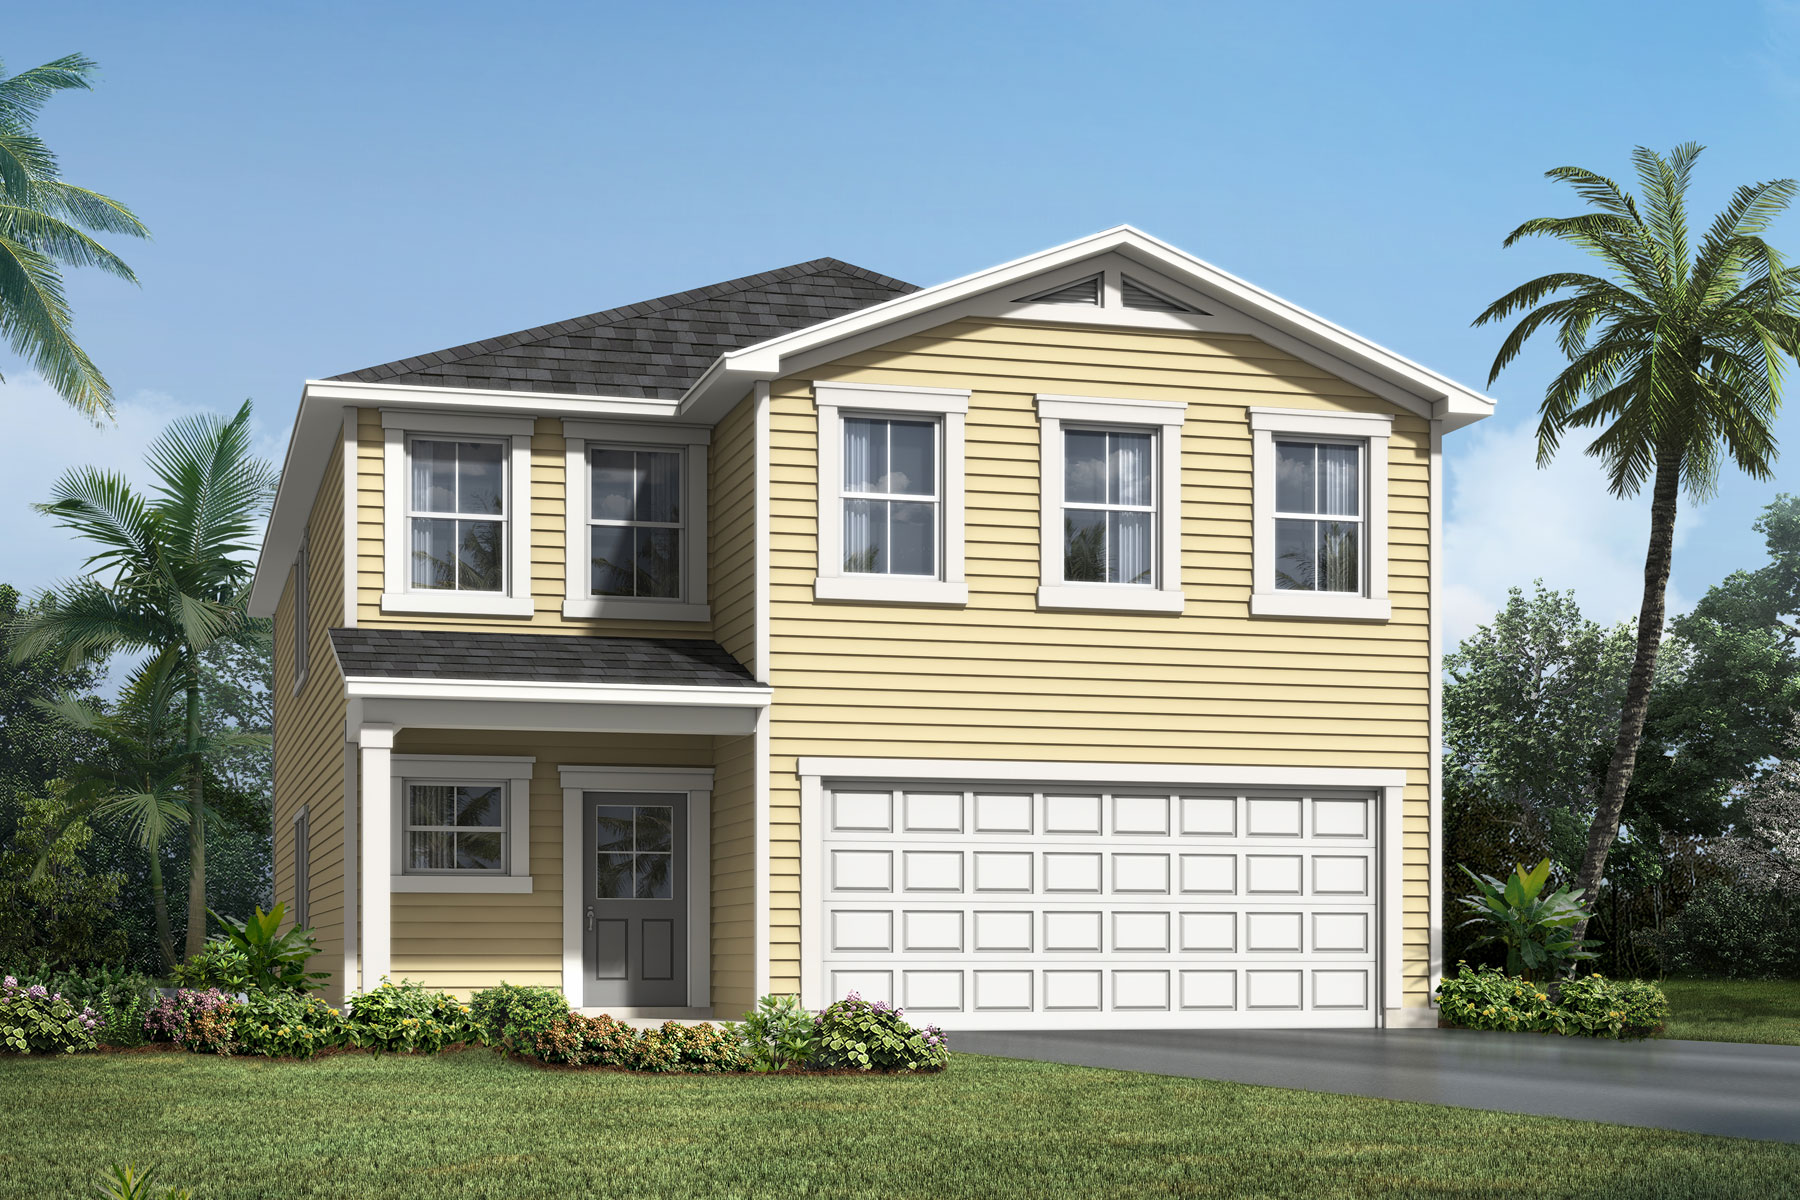 Whitney Plan s30e-whitney-lc-4800 at RiverTown - Haven in St. Johns Florida by Mattamy Homes